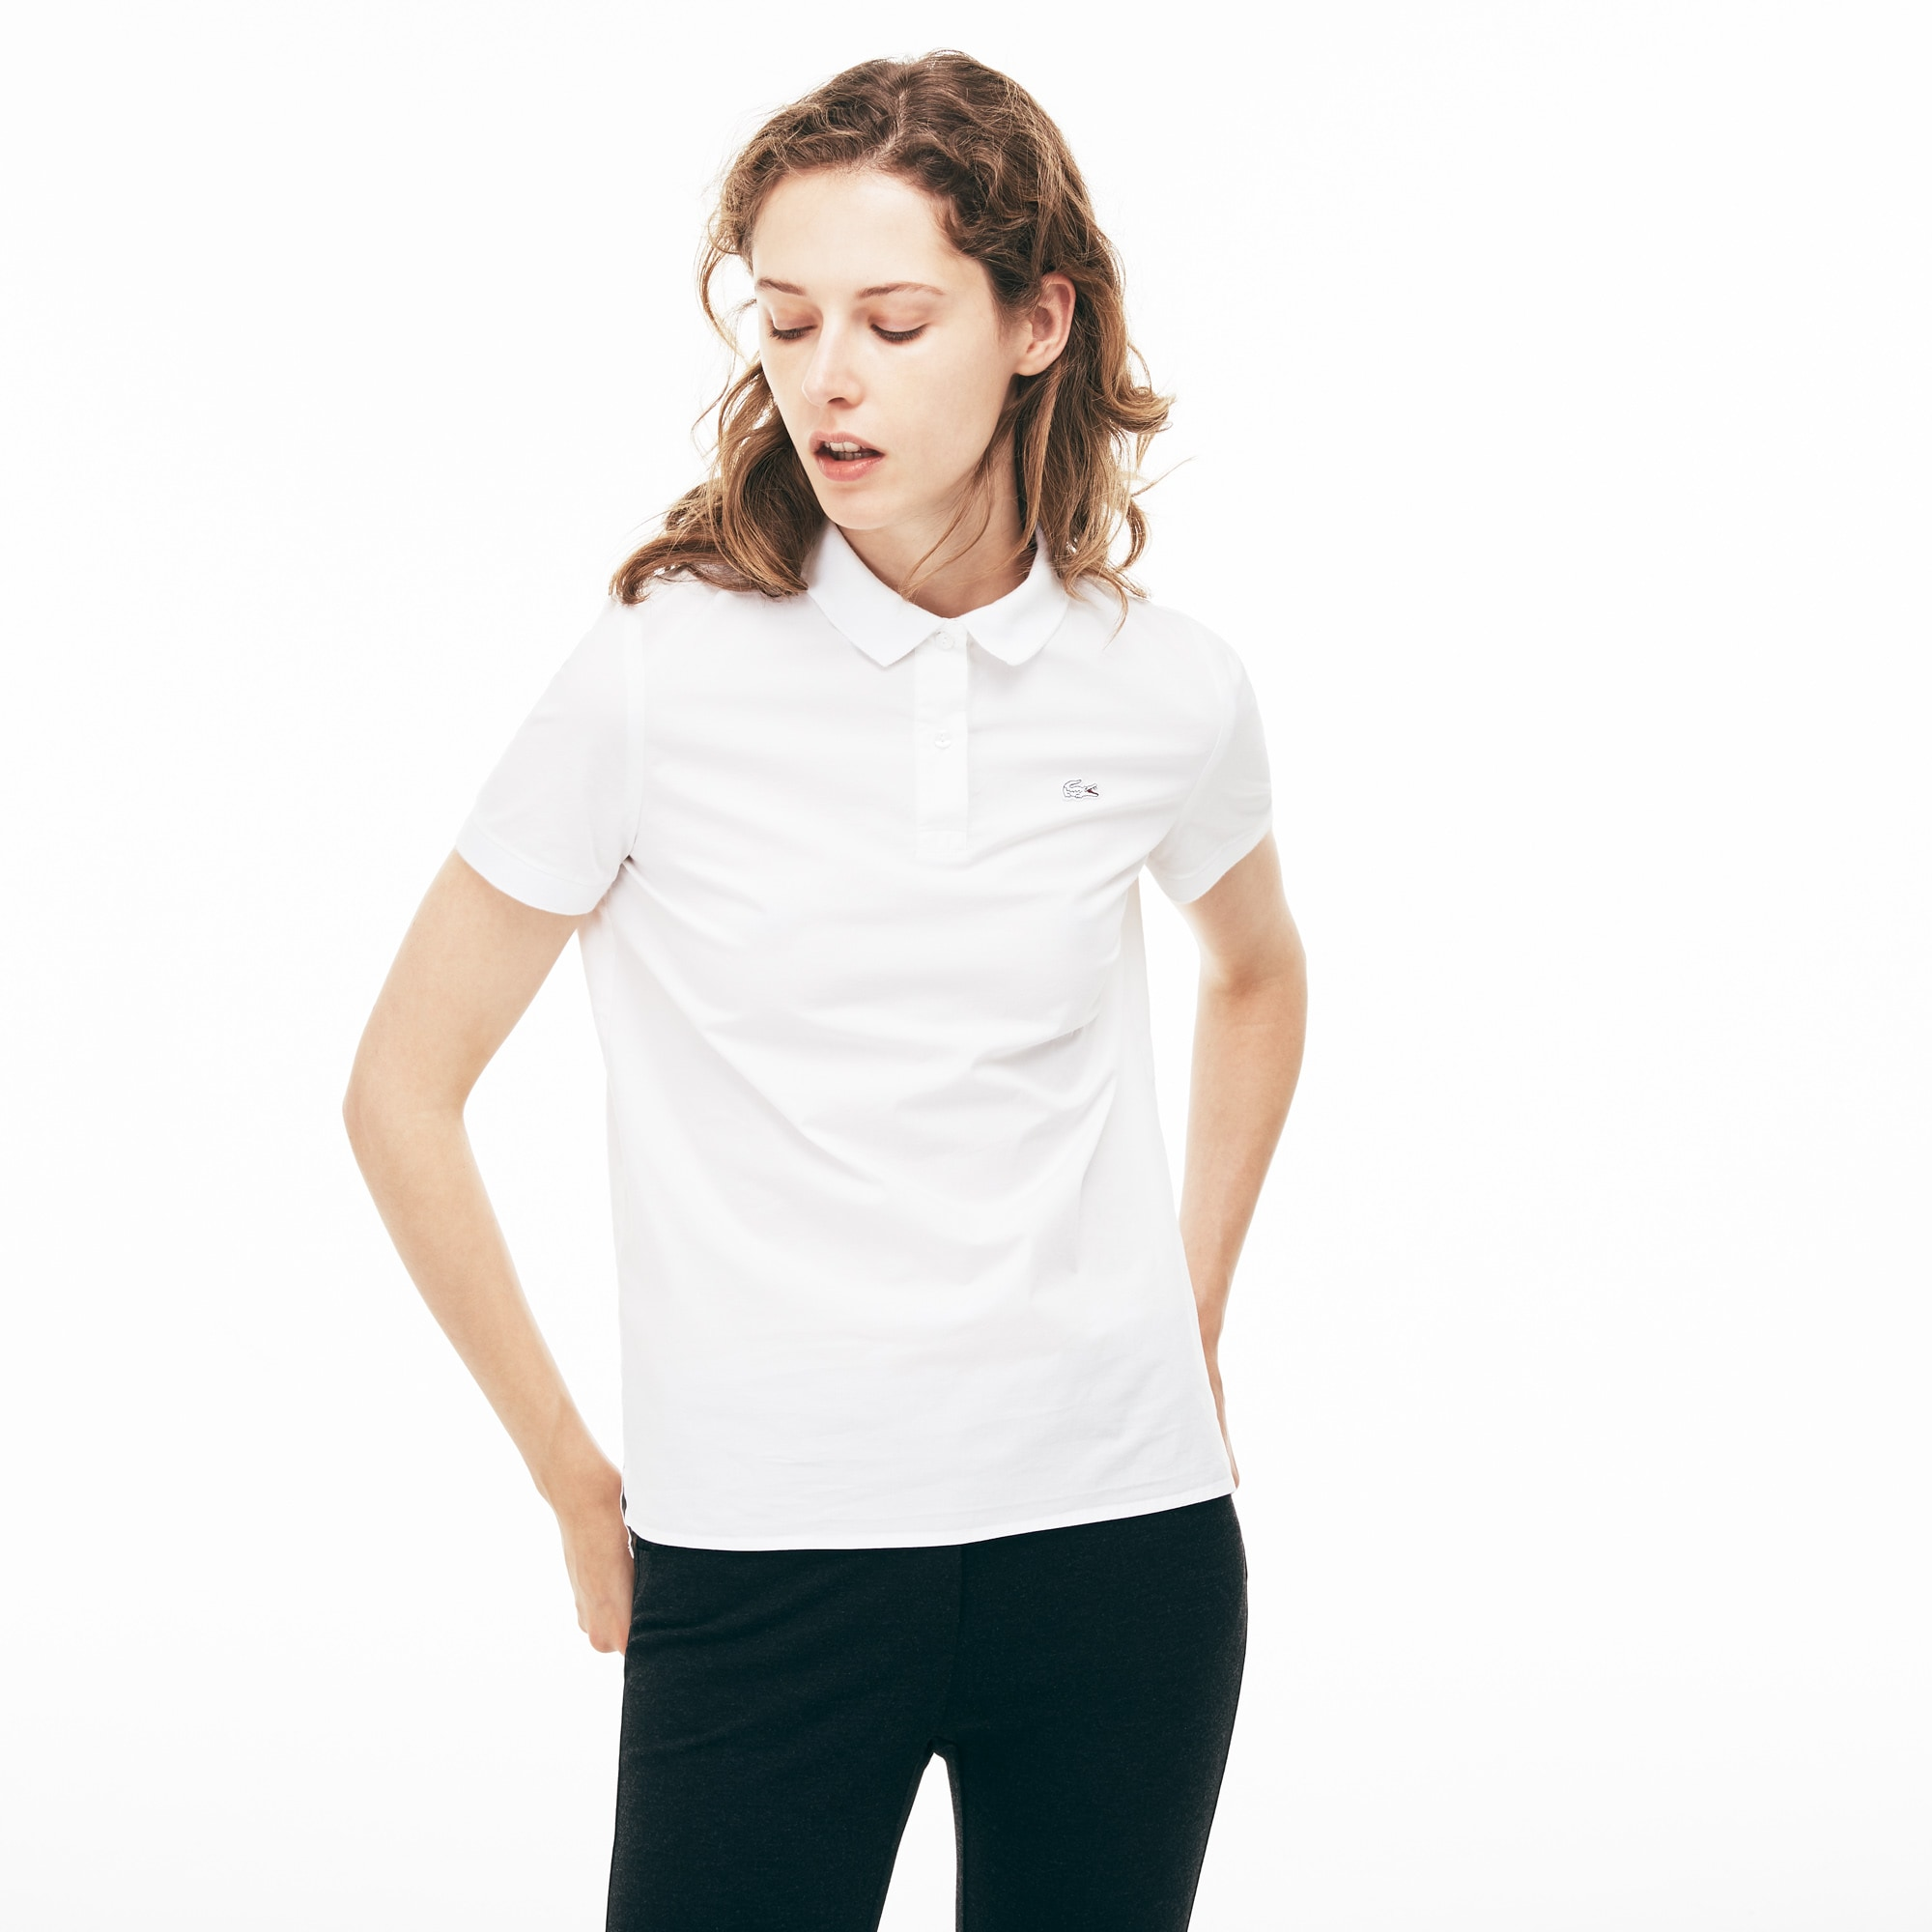 Lacoste Hemden dames regular fit stretchpopeline